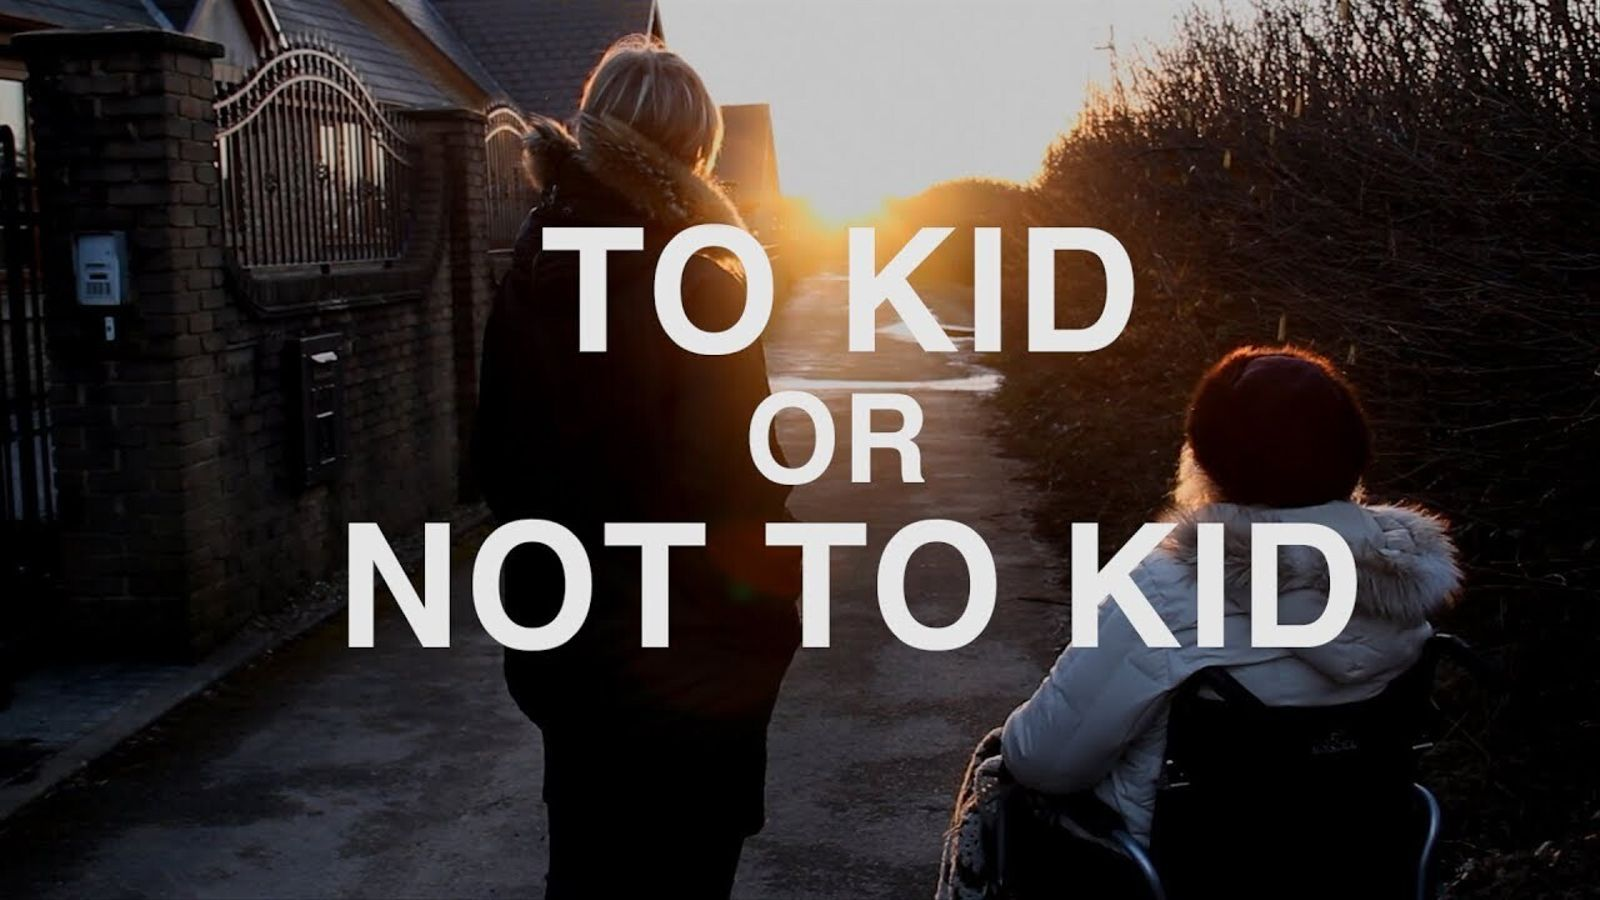 Tràiler de 'To kid or not to kid'